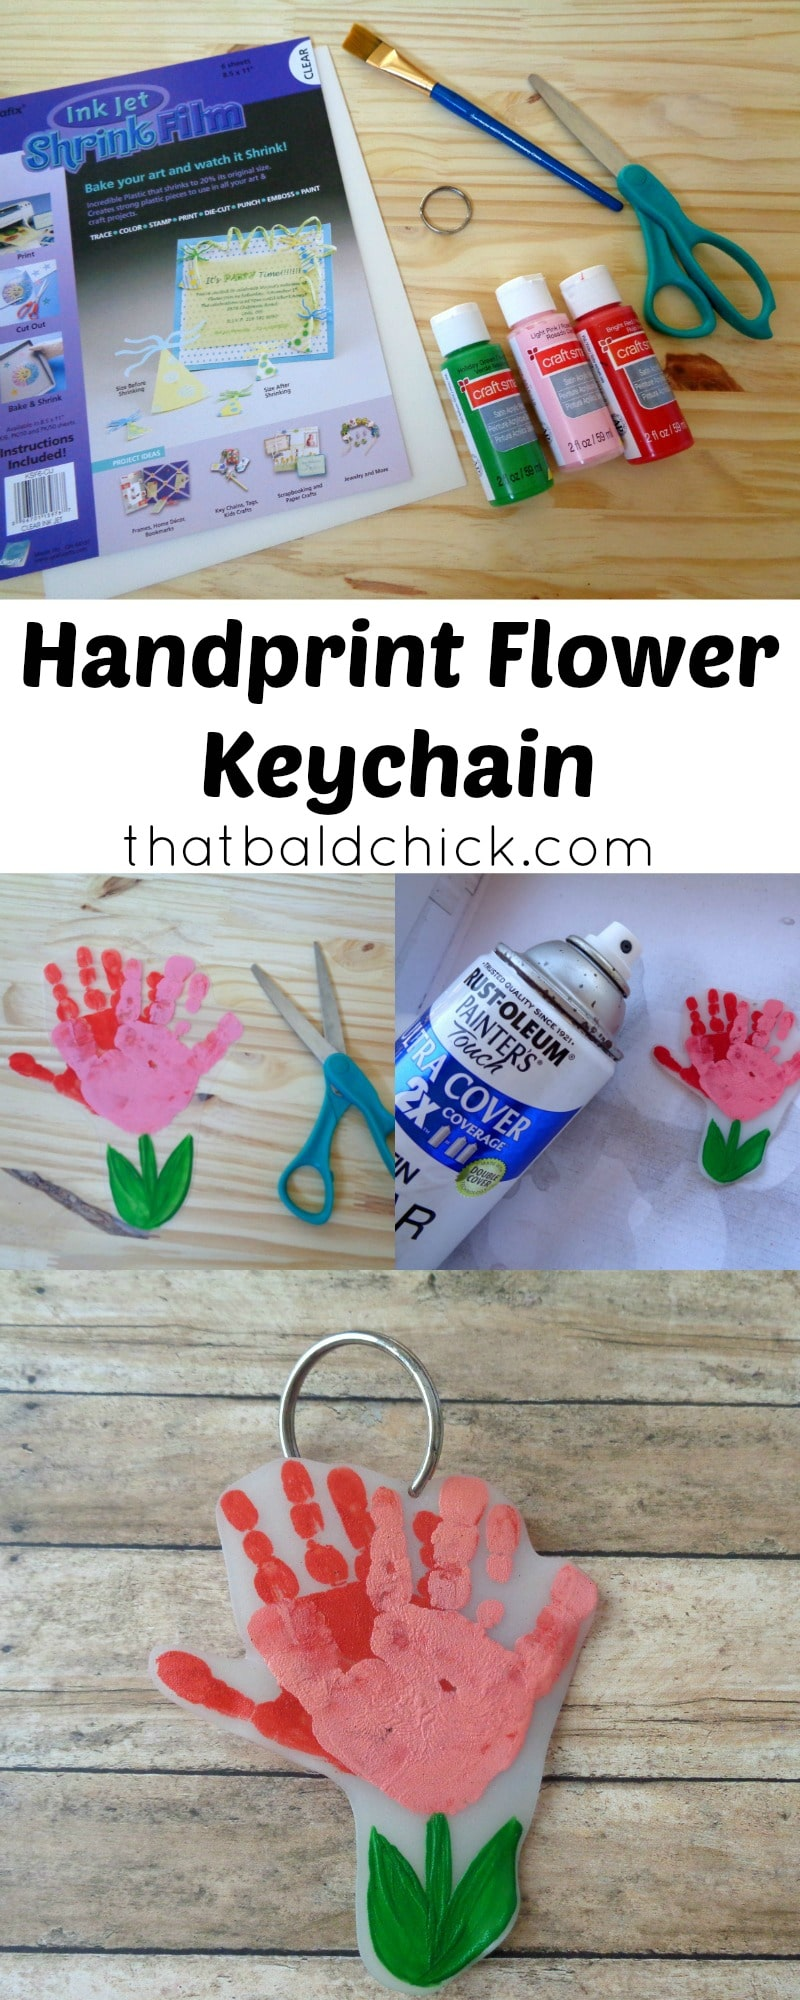 handprint flower keychain at thatbaldchick.com